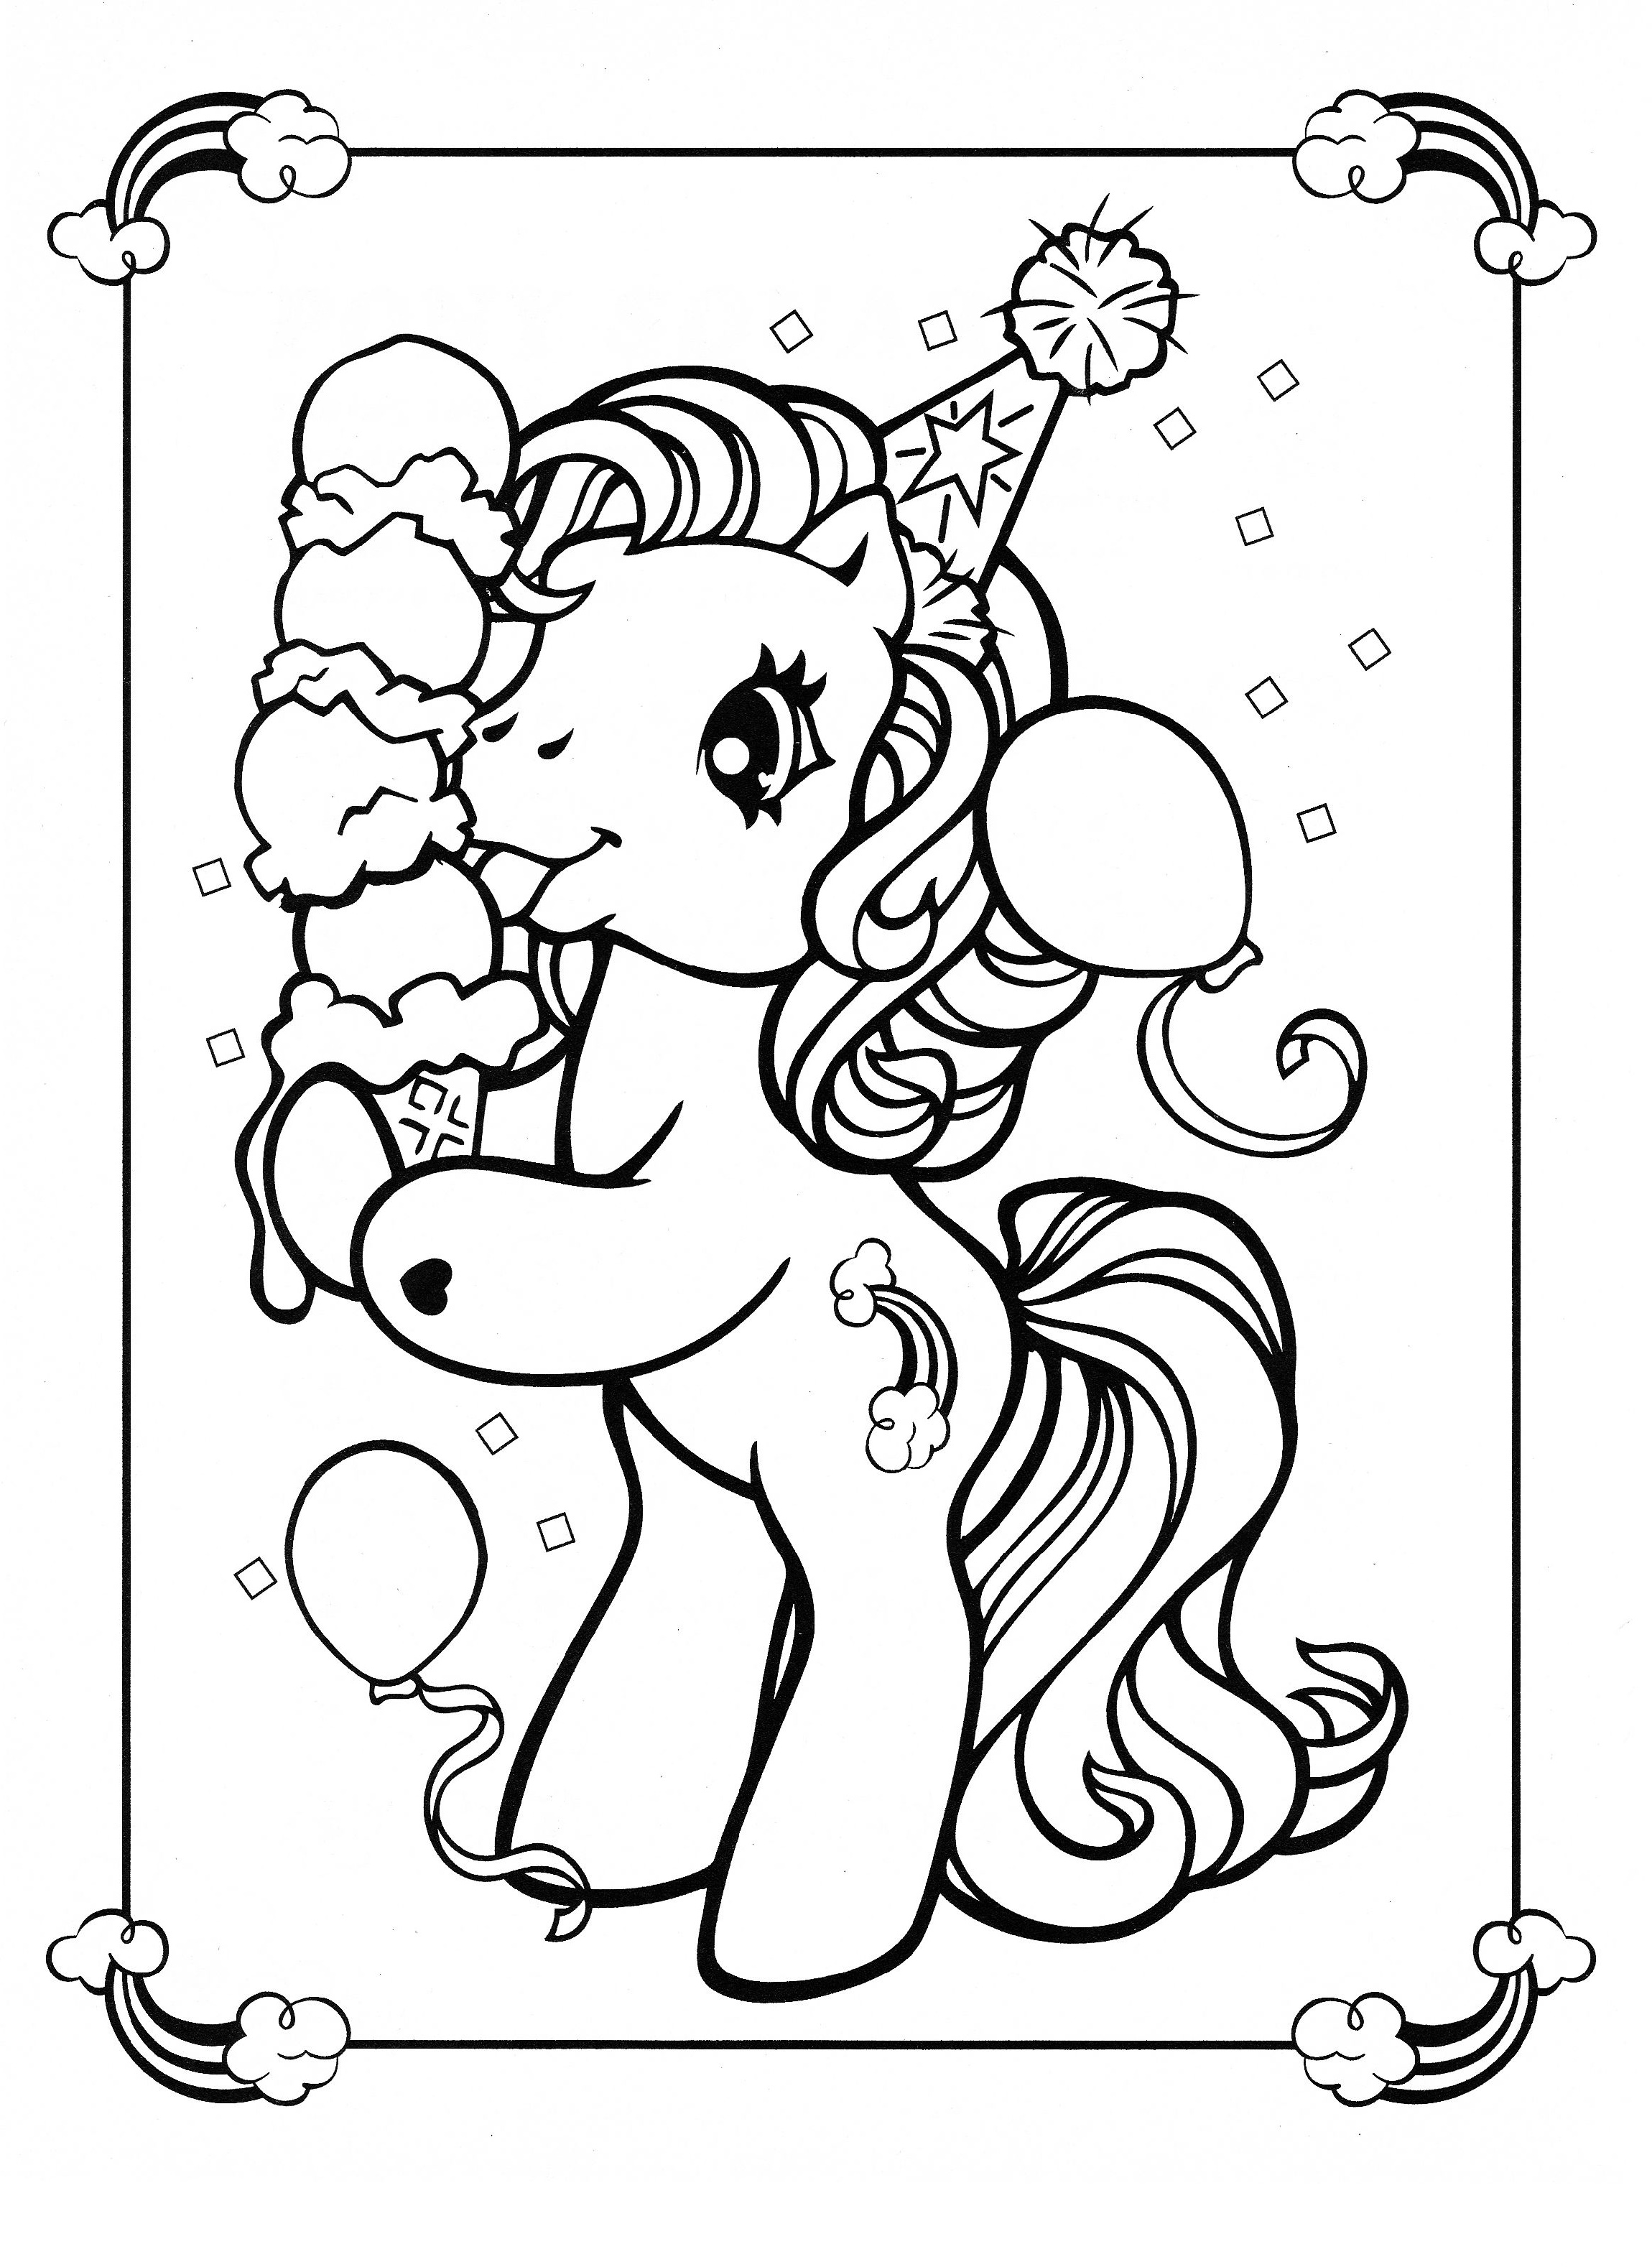 Printable Unicorn Coloring Pages For Girls